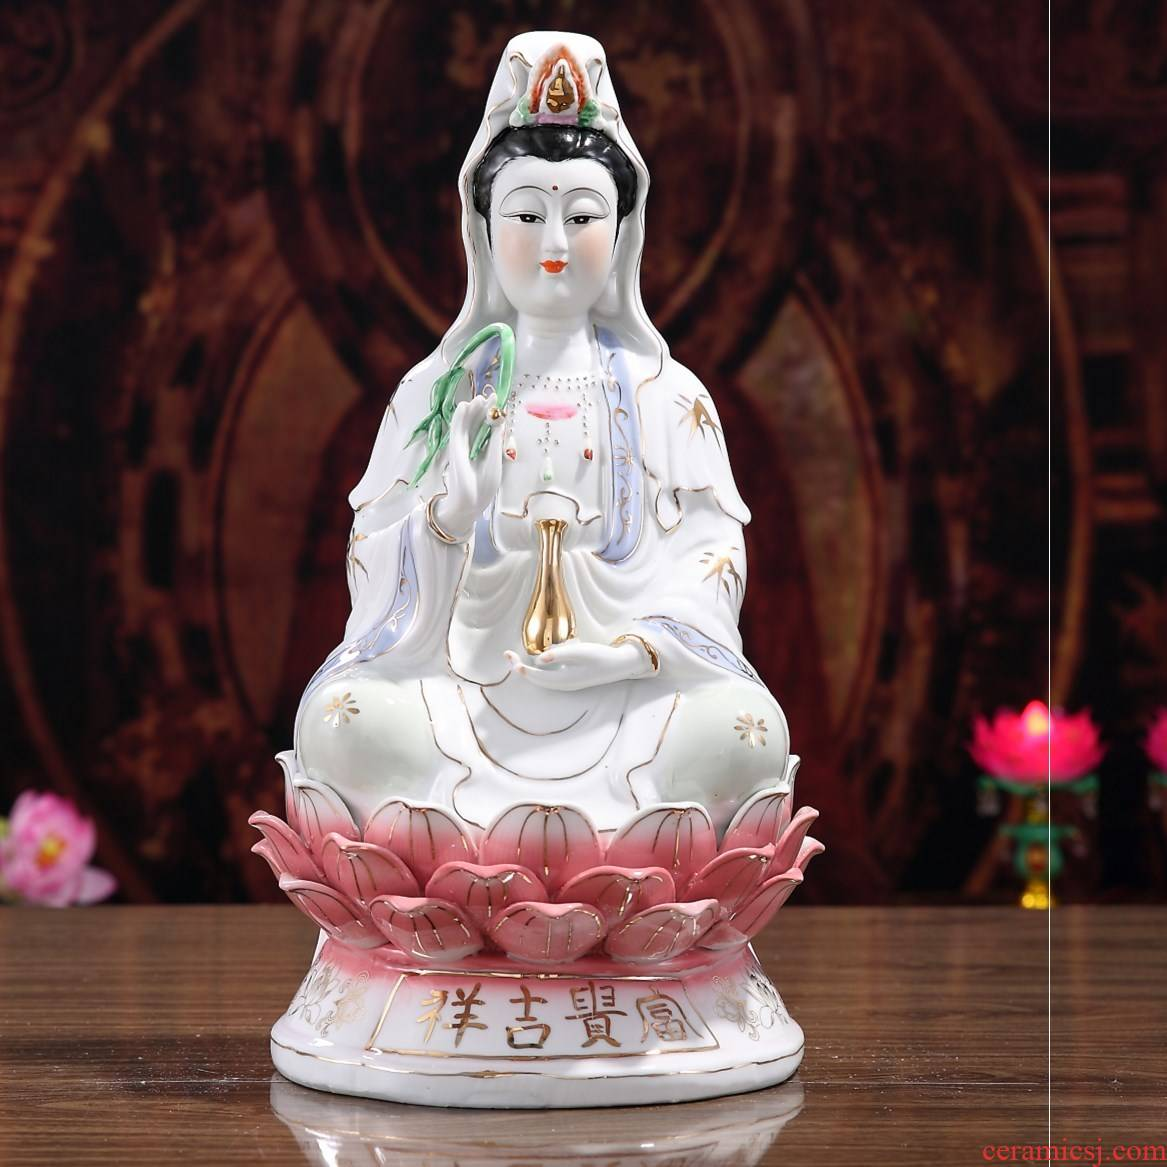 Medallion of Buddha in the south China sea guanyin bodhisattva household safety in avalokitesvara furnishing articles guanyin ceramic figure